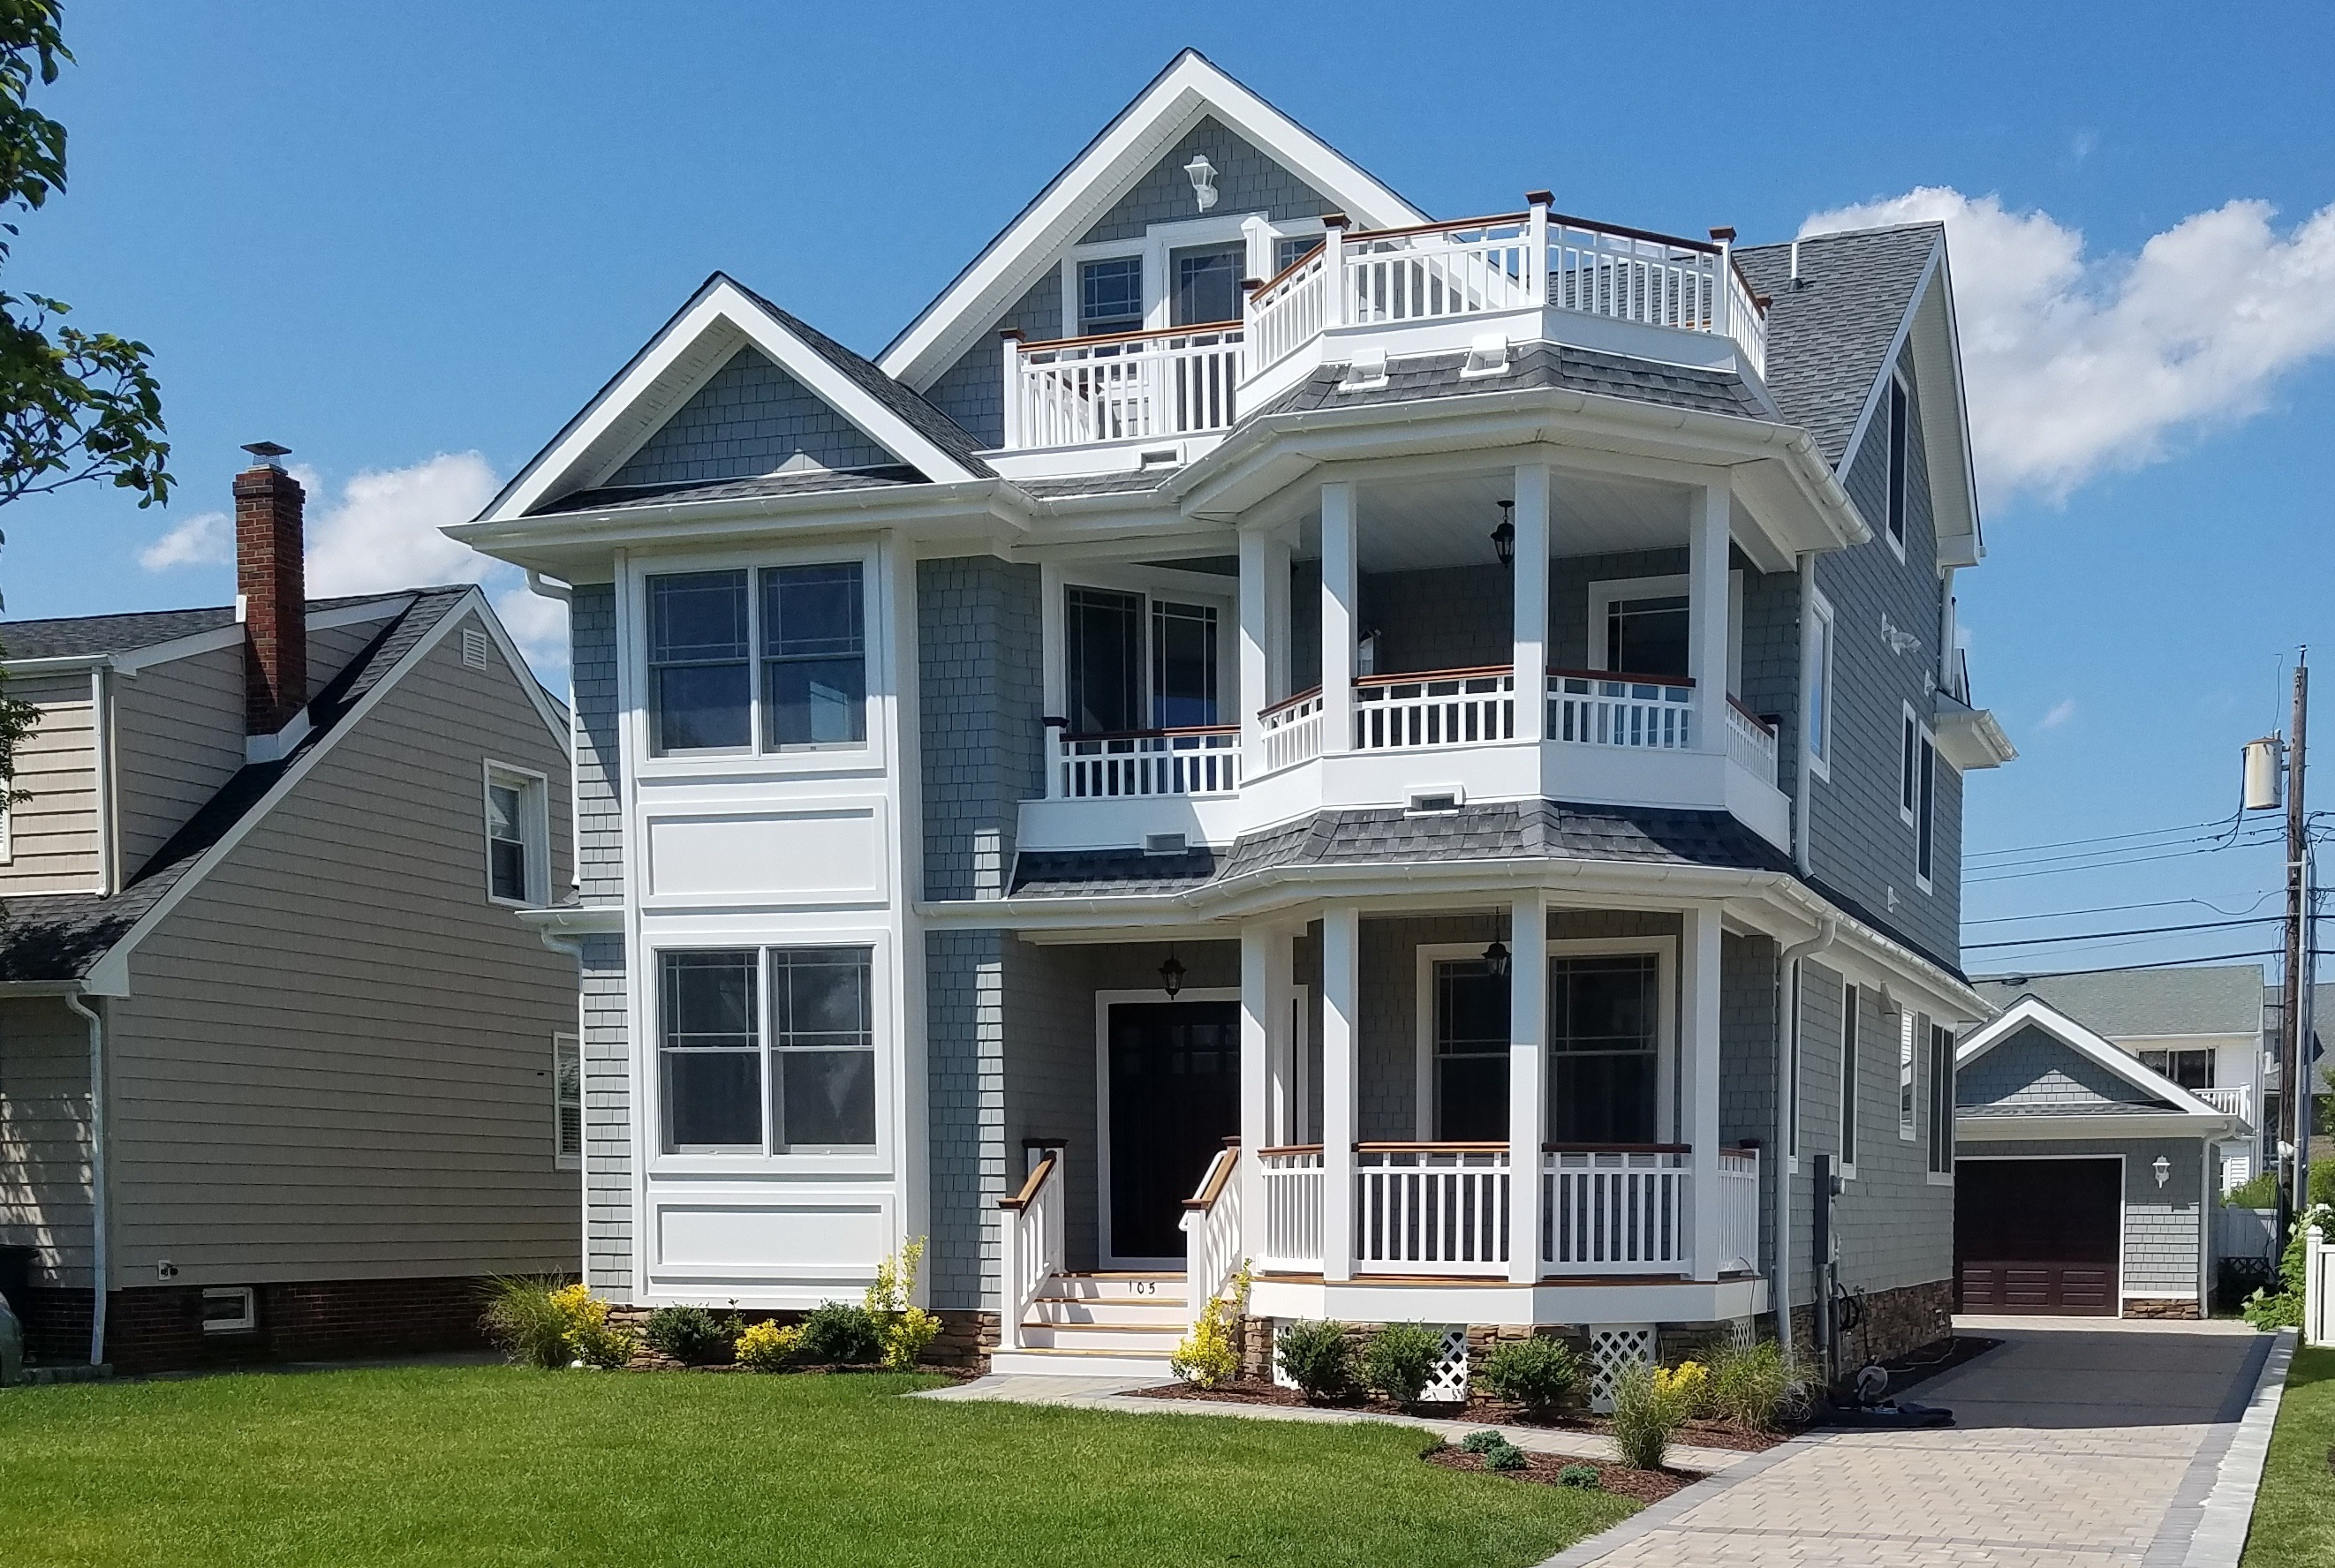 105 Seaside Pl, Spring Lake NJ